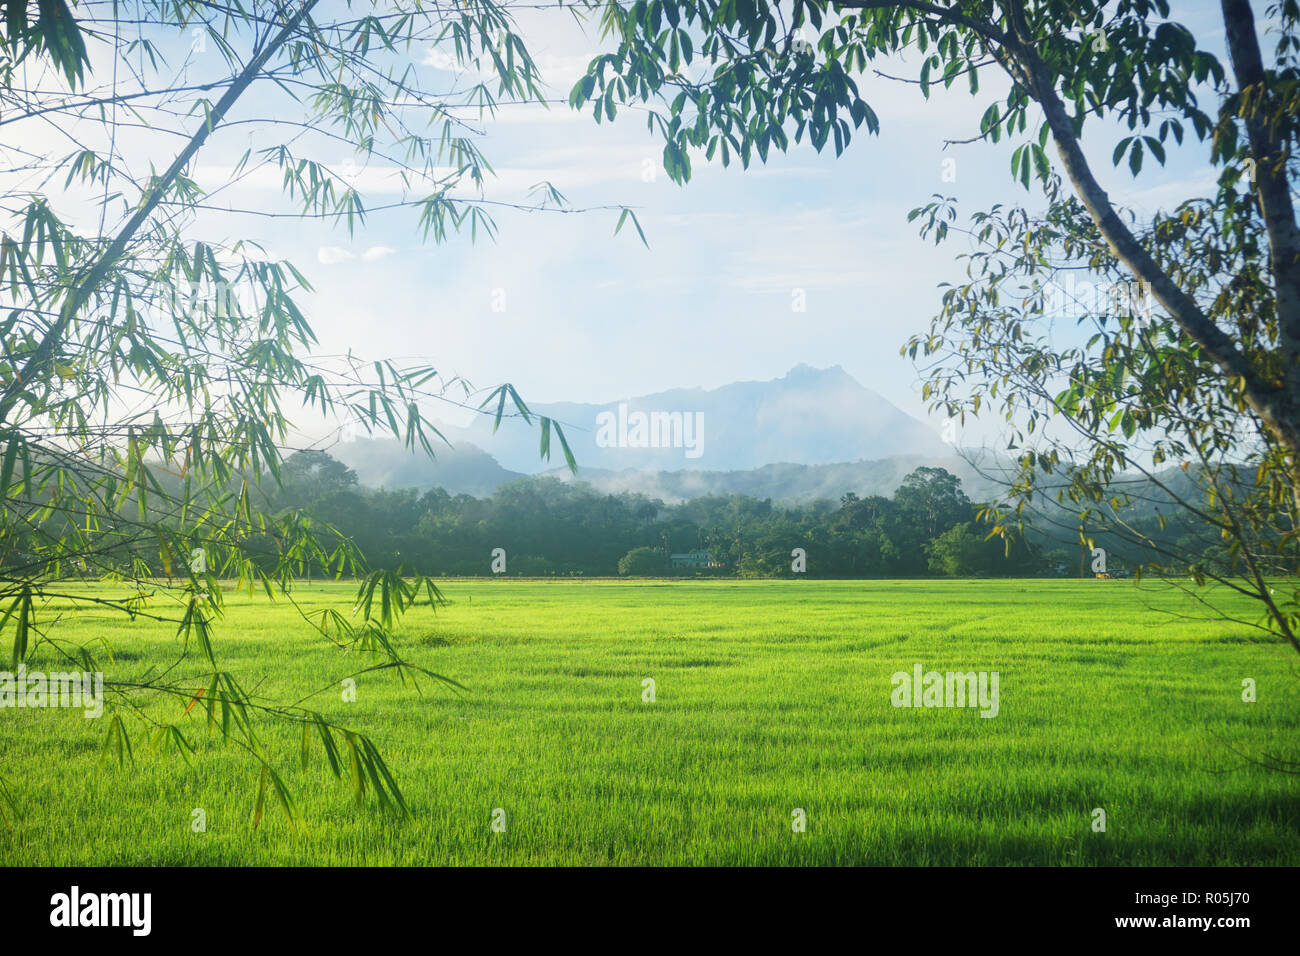 landscape scenic view of paddy field in Sabah Borneo with Mount Kinabalu at far background. - Stock Image